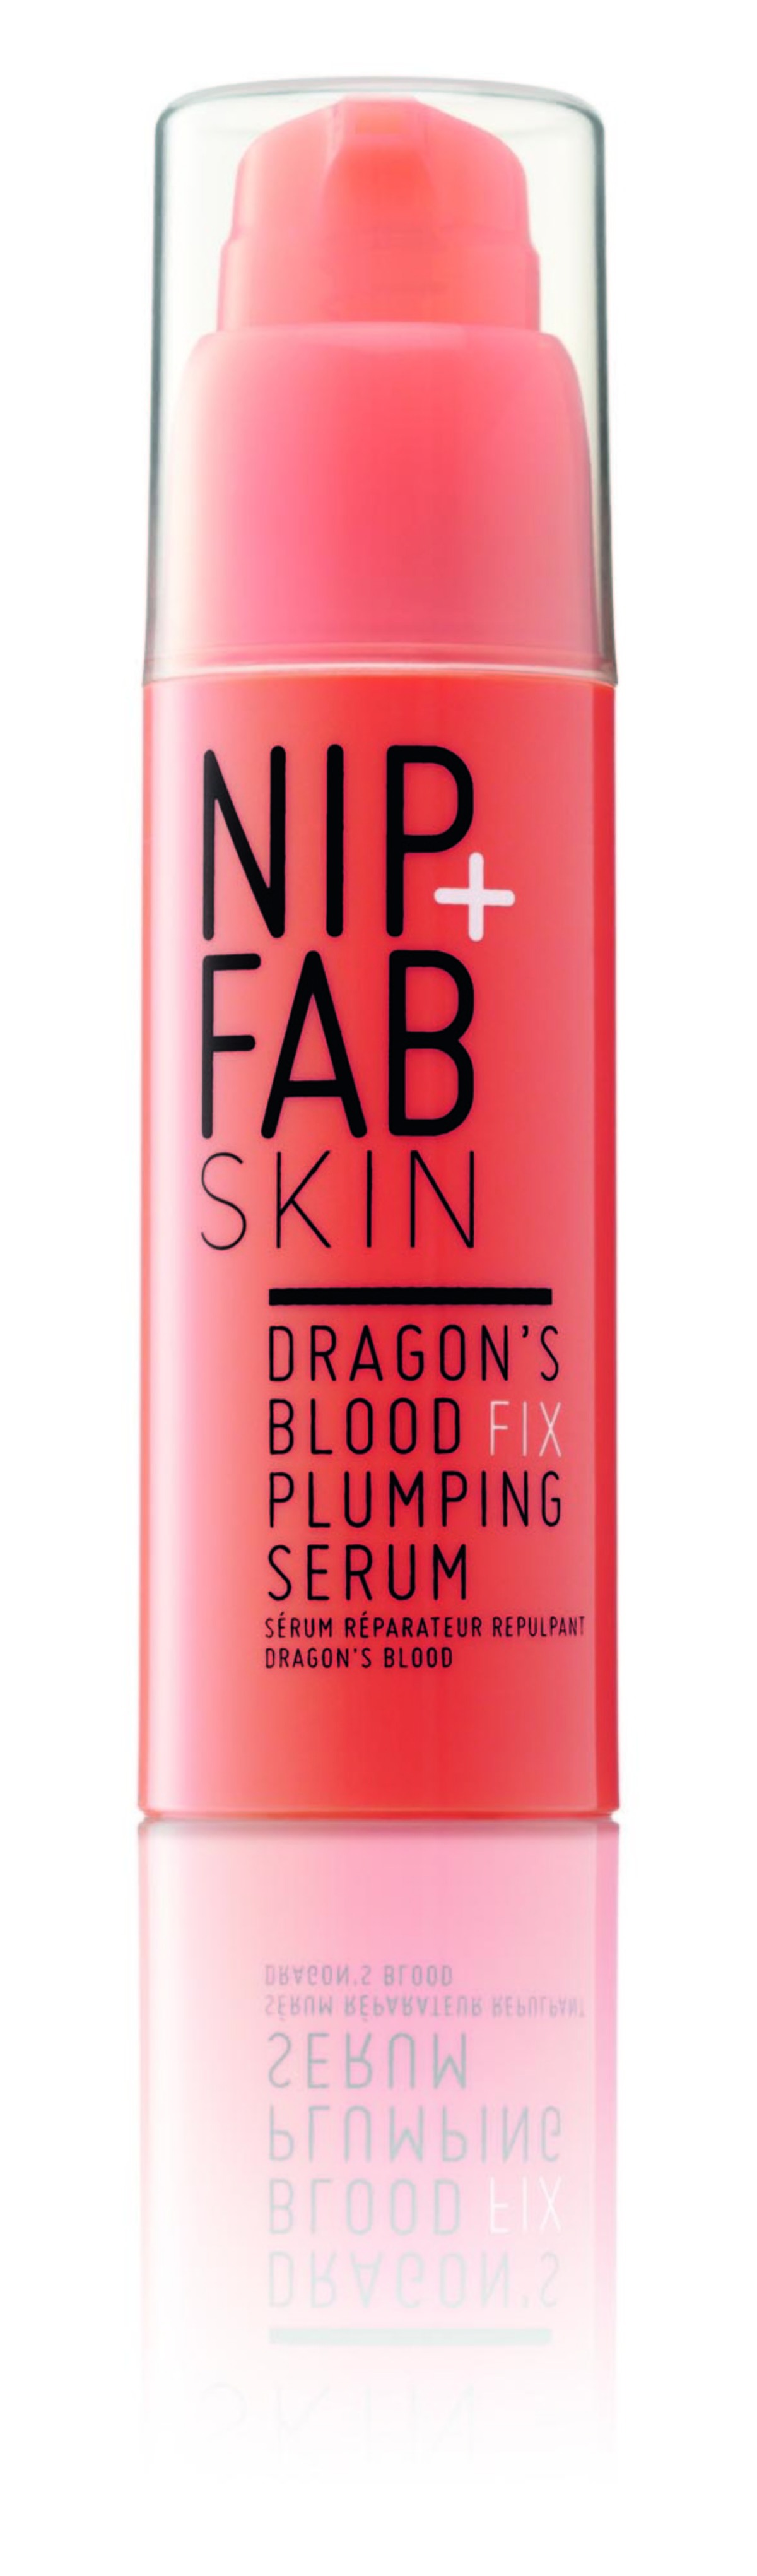 NIP_FAB-DRAGONS_BLOOD_PLUMB_SERUM-50ML-PRINT